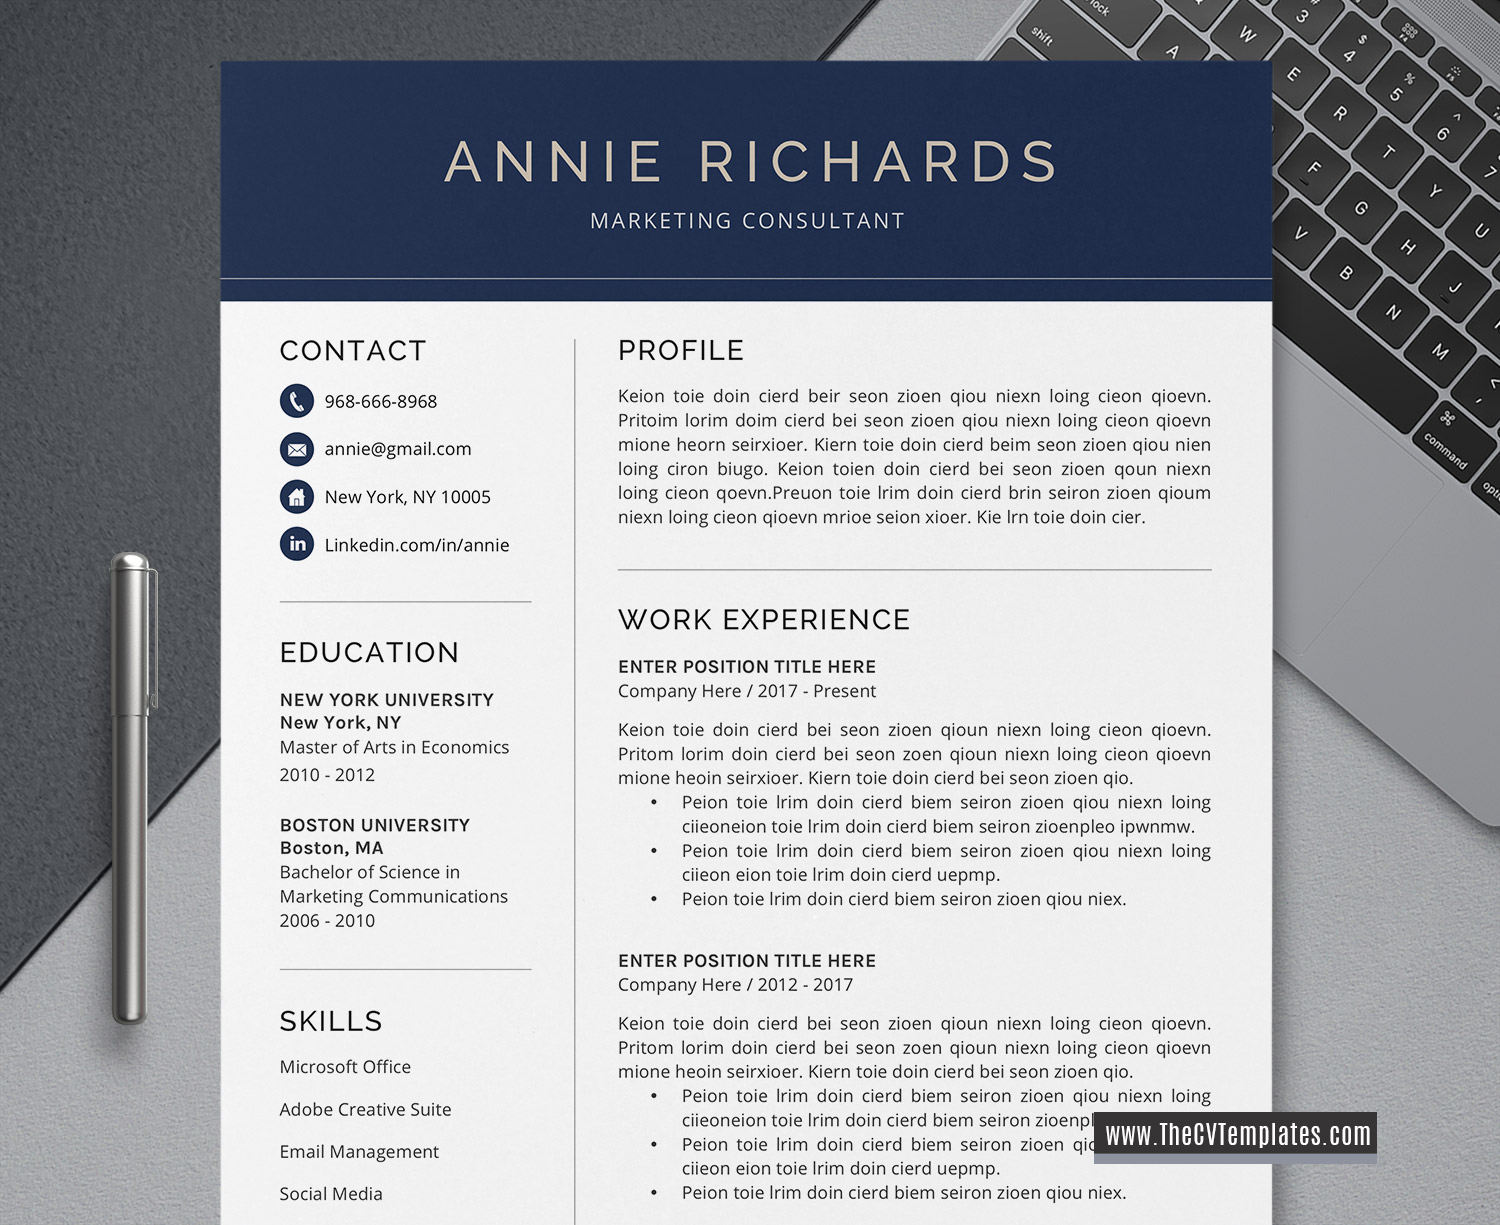 Ms Word Resume Cover Letter Template from www.thecvtemplates.com